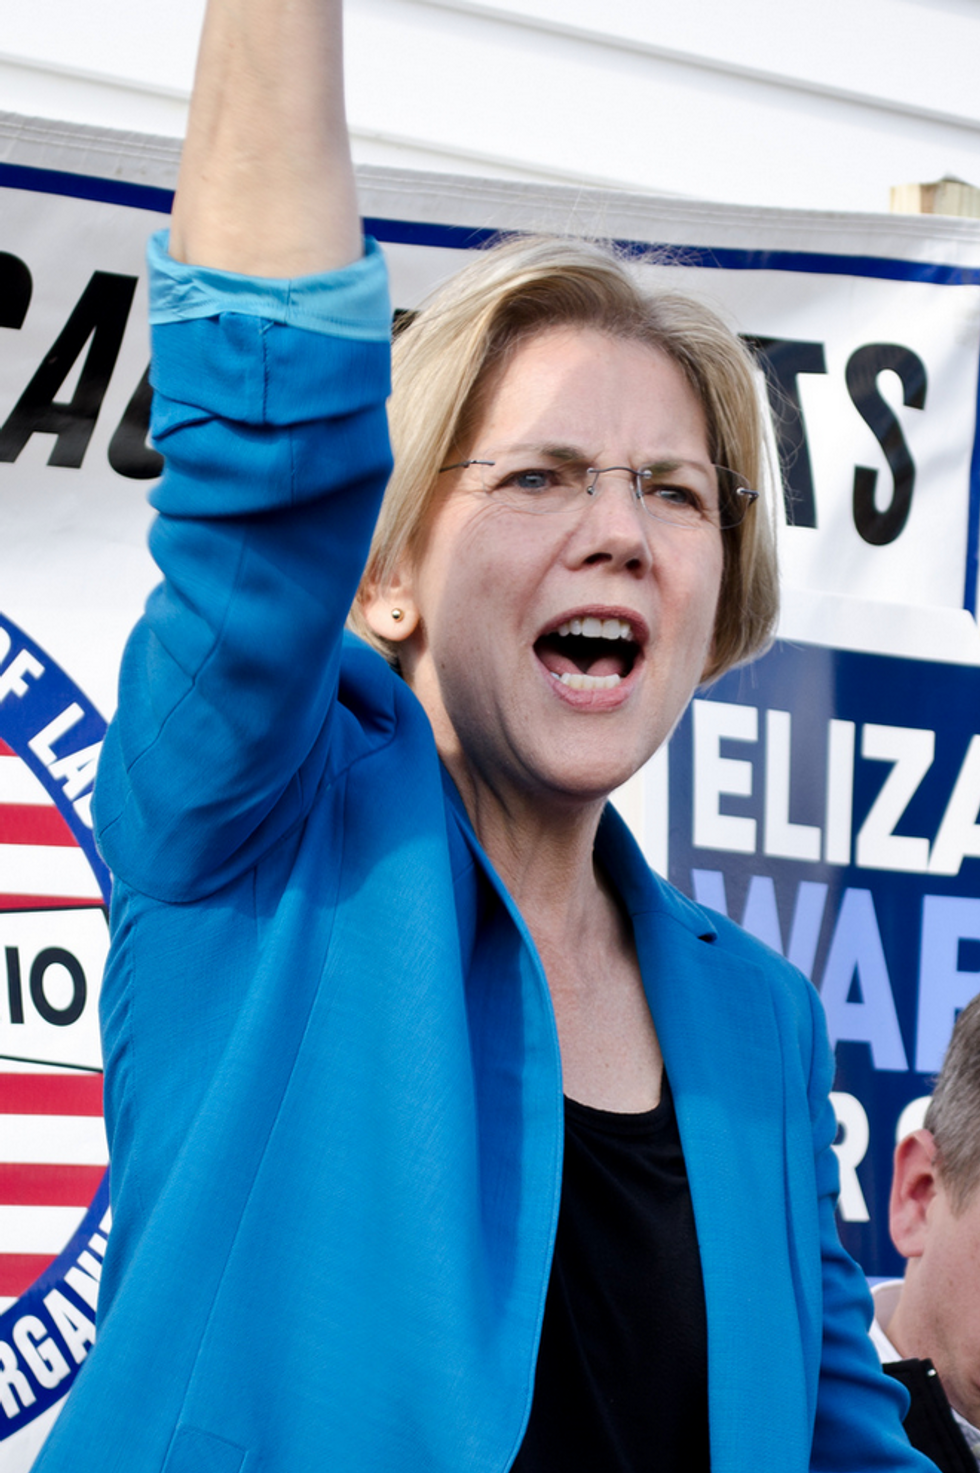 Two Native American Geneticists Explain the Outrage Over Elizabeth Warren's DNA Test